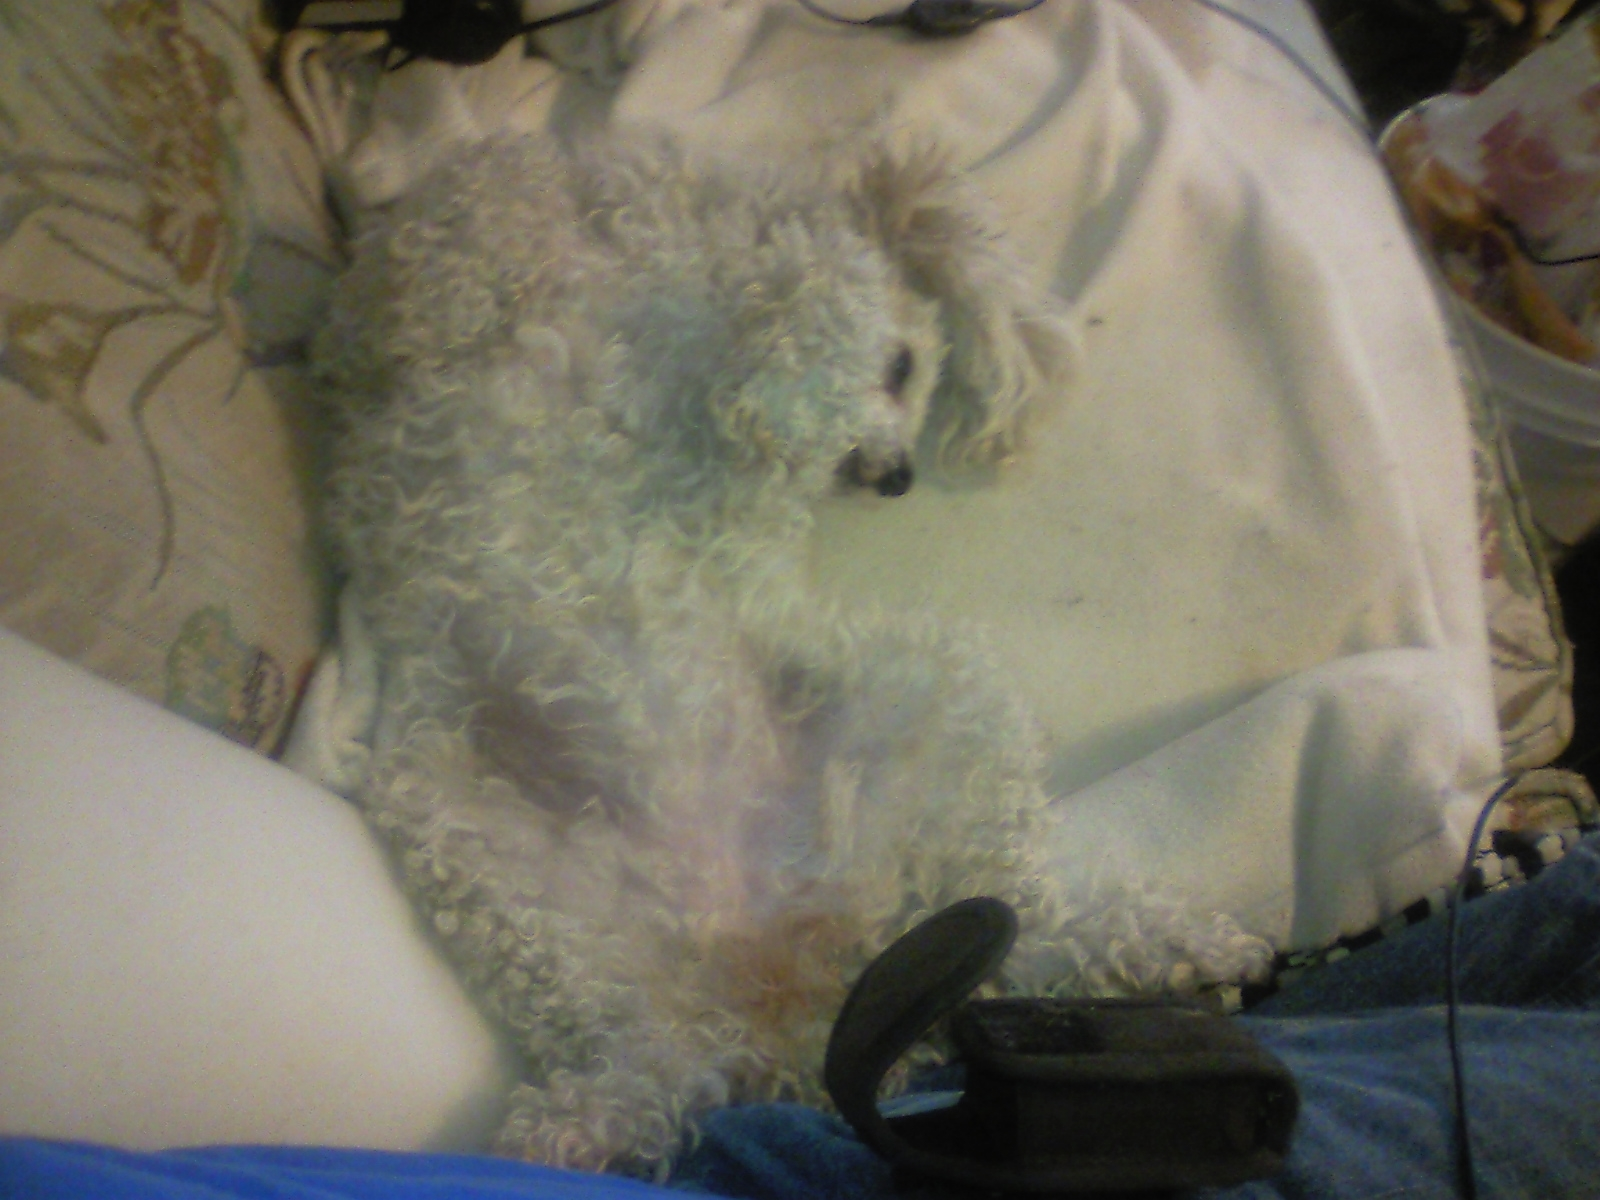 How About A Pet Picture Thread: Dogs, Cats, ...-attackpoodle-ready-.jpg